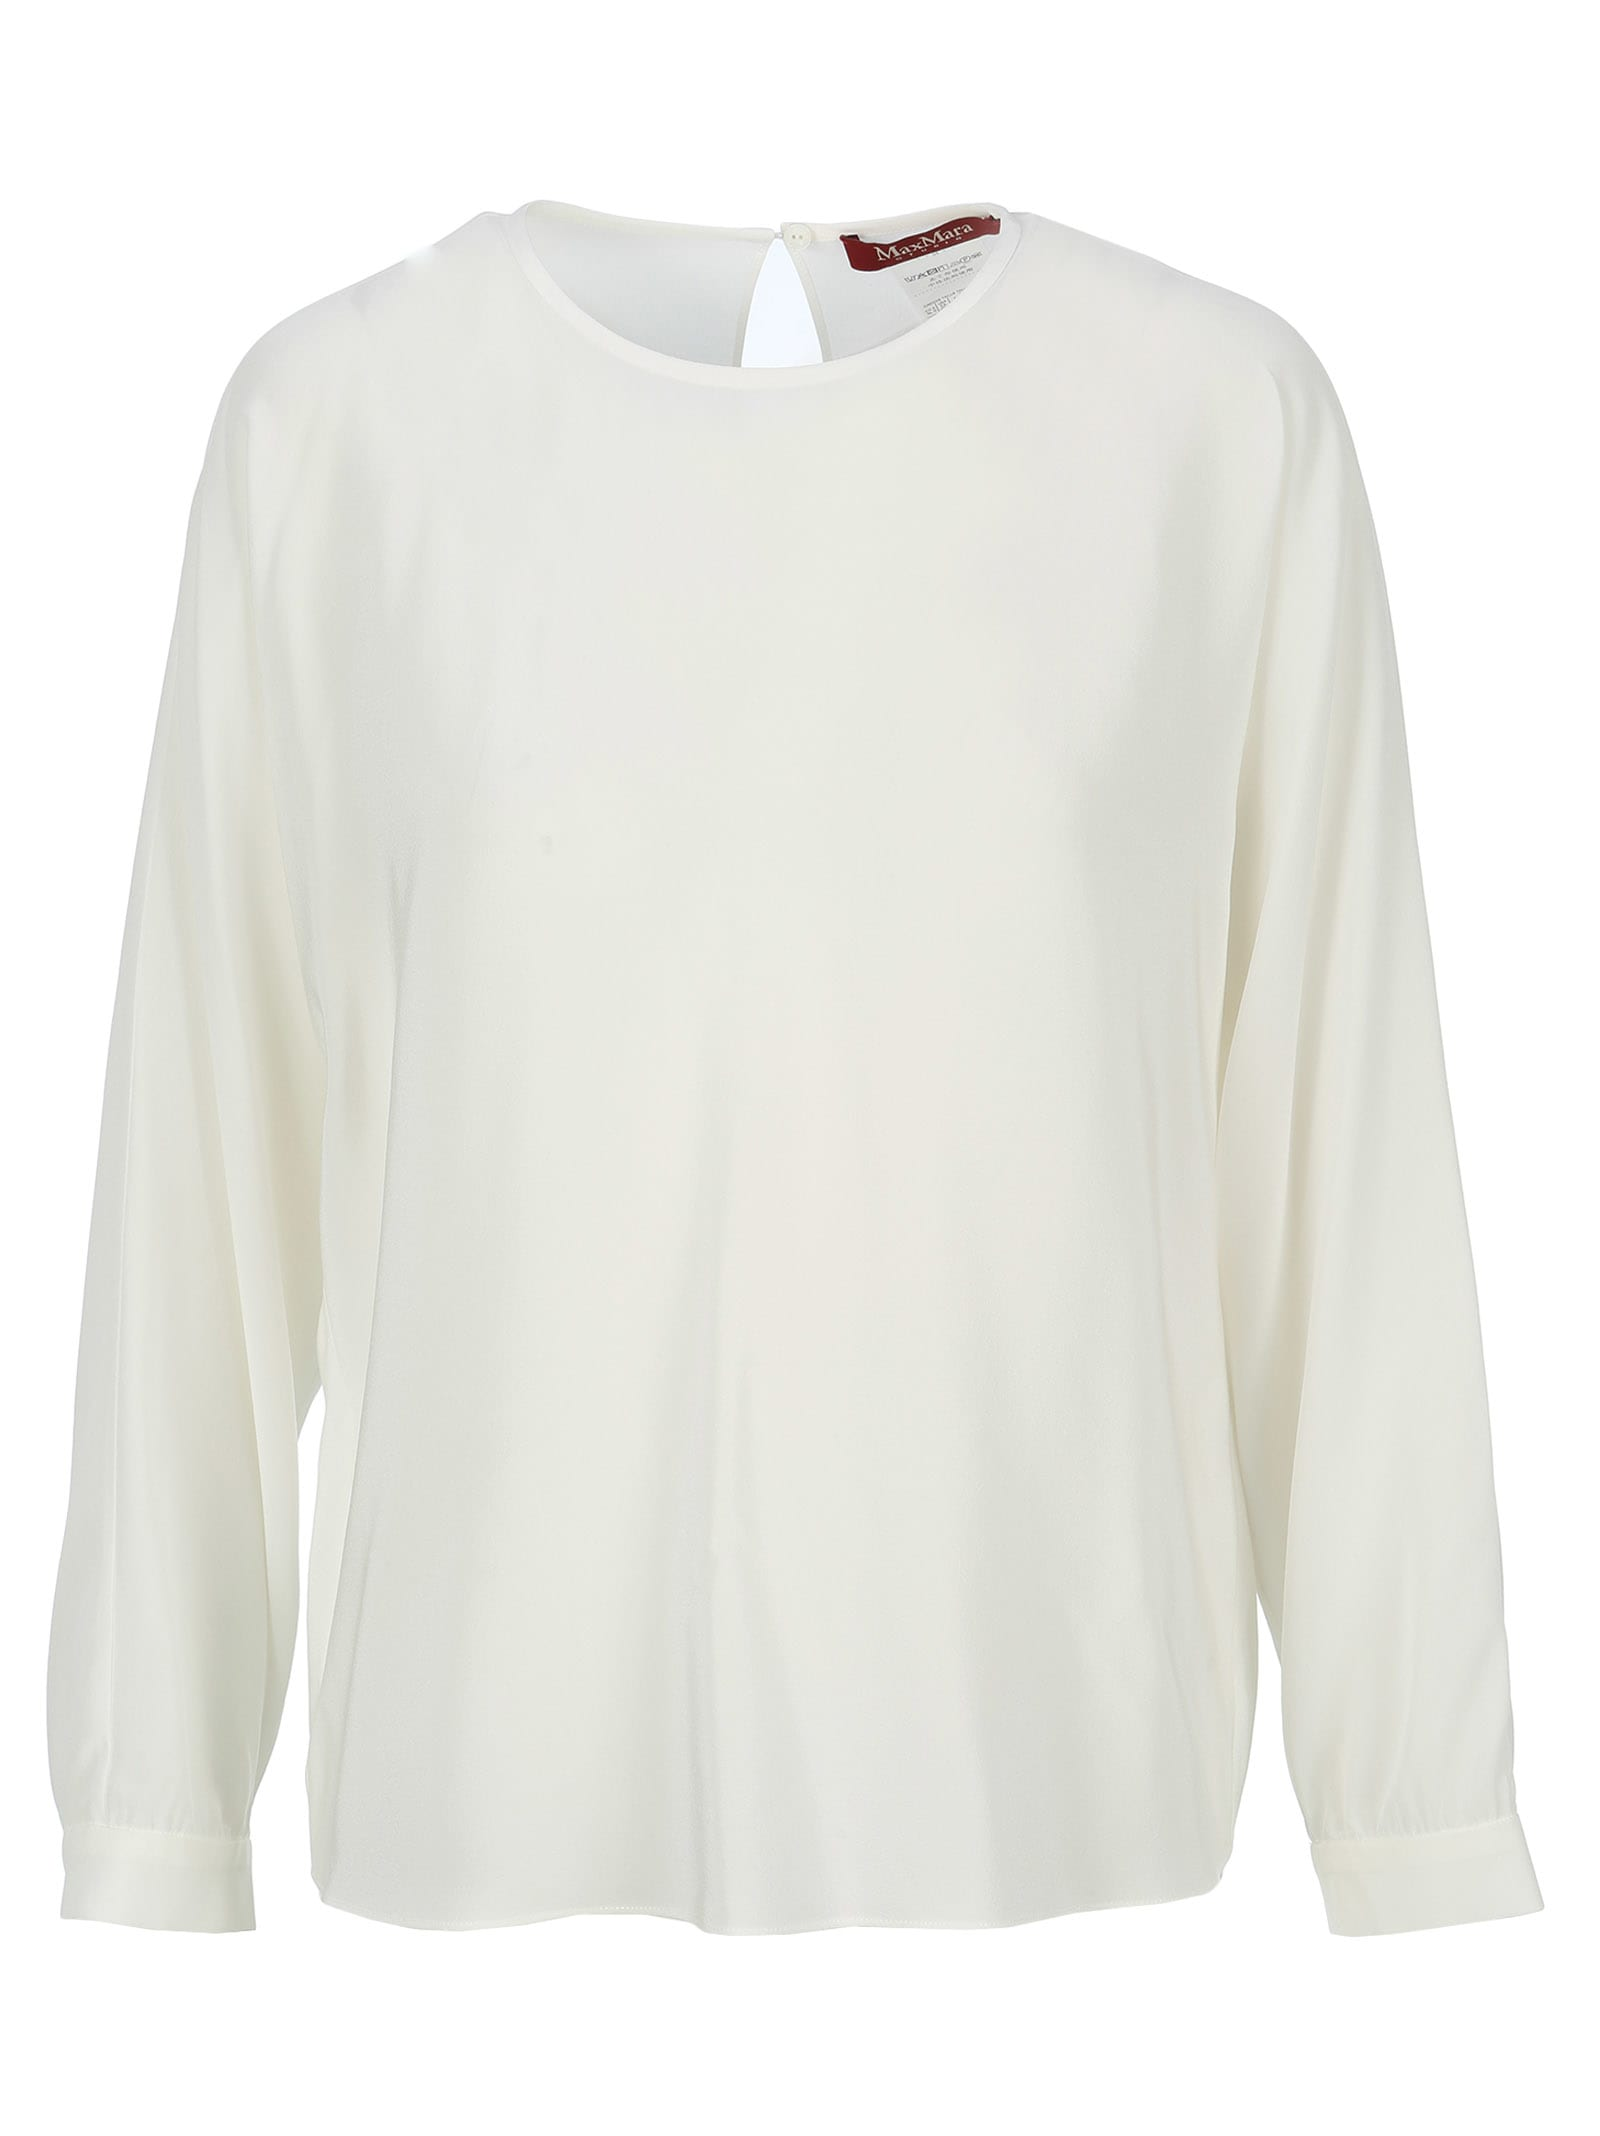 Max Mara Studio Silk Blouse